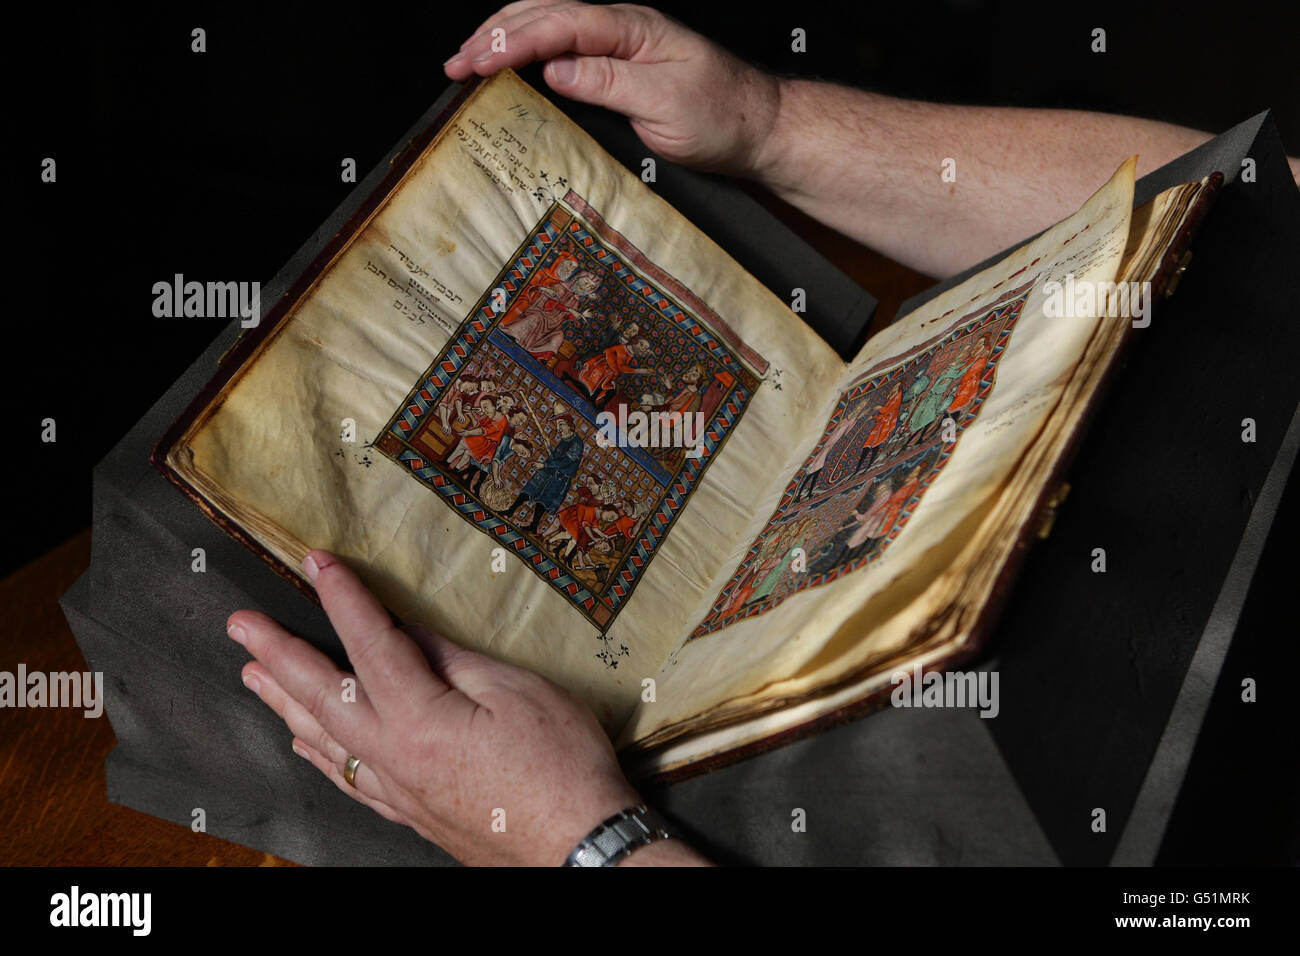 Haggadah on display - Stock Image